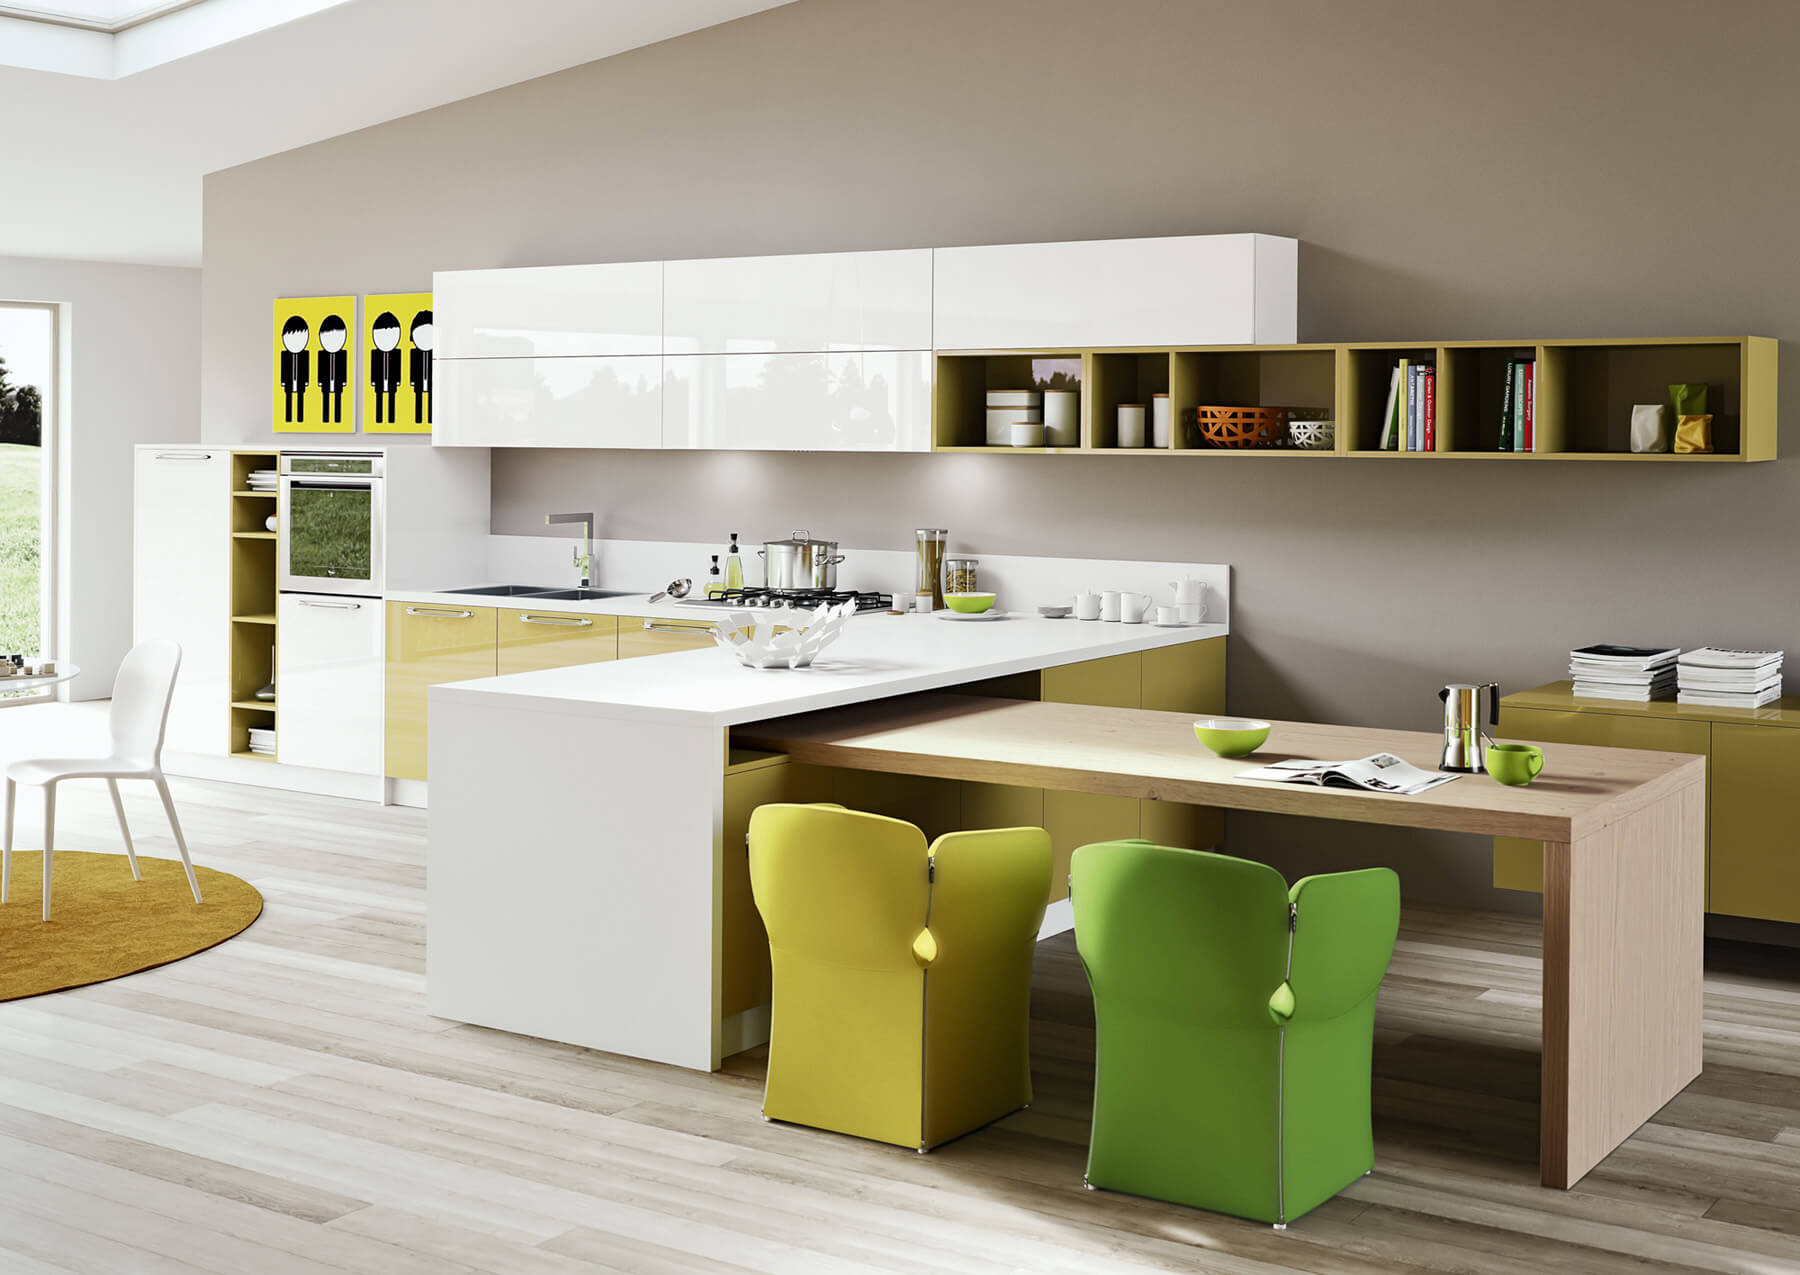 Kitchen design pop art style in green colors